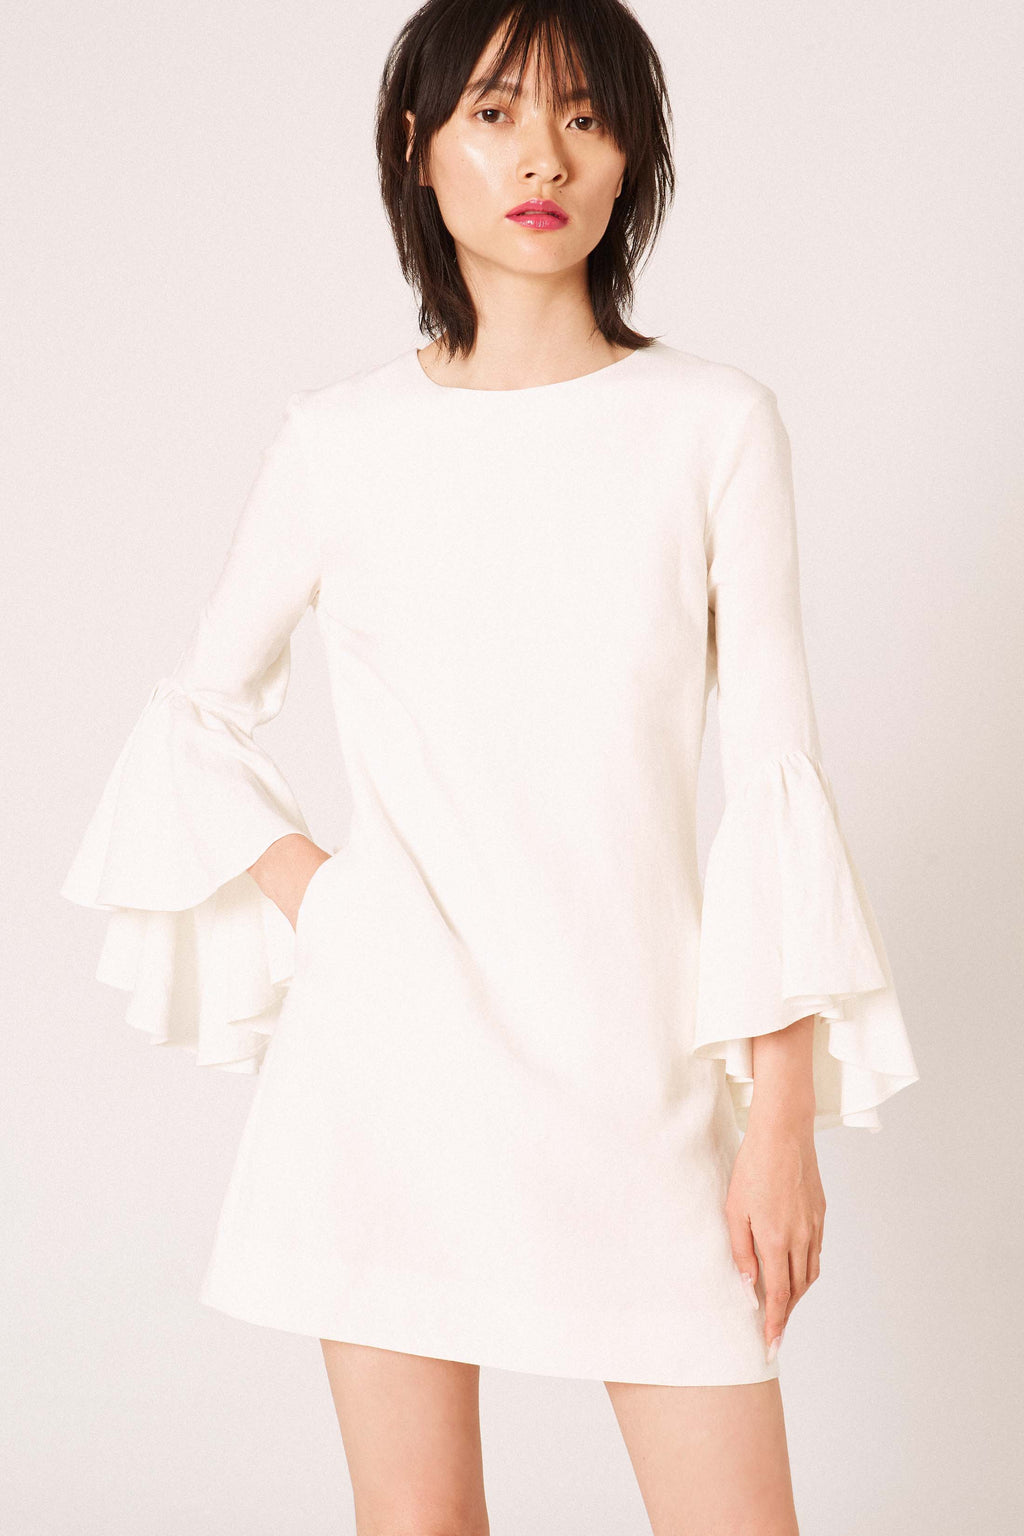 Neta Dress - Etxart & Panno USA